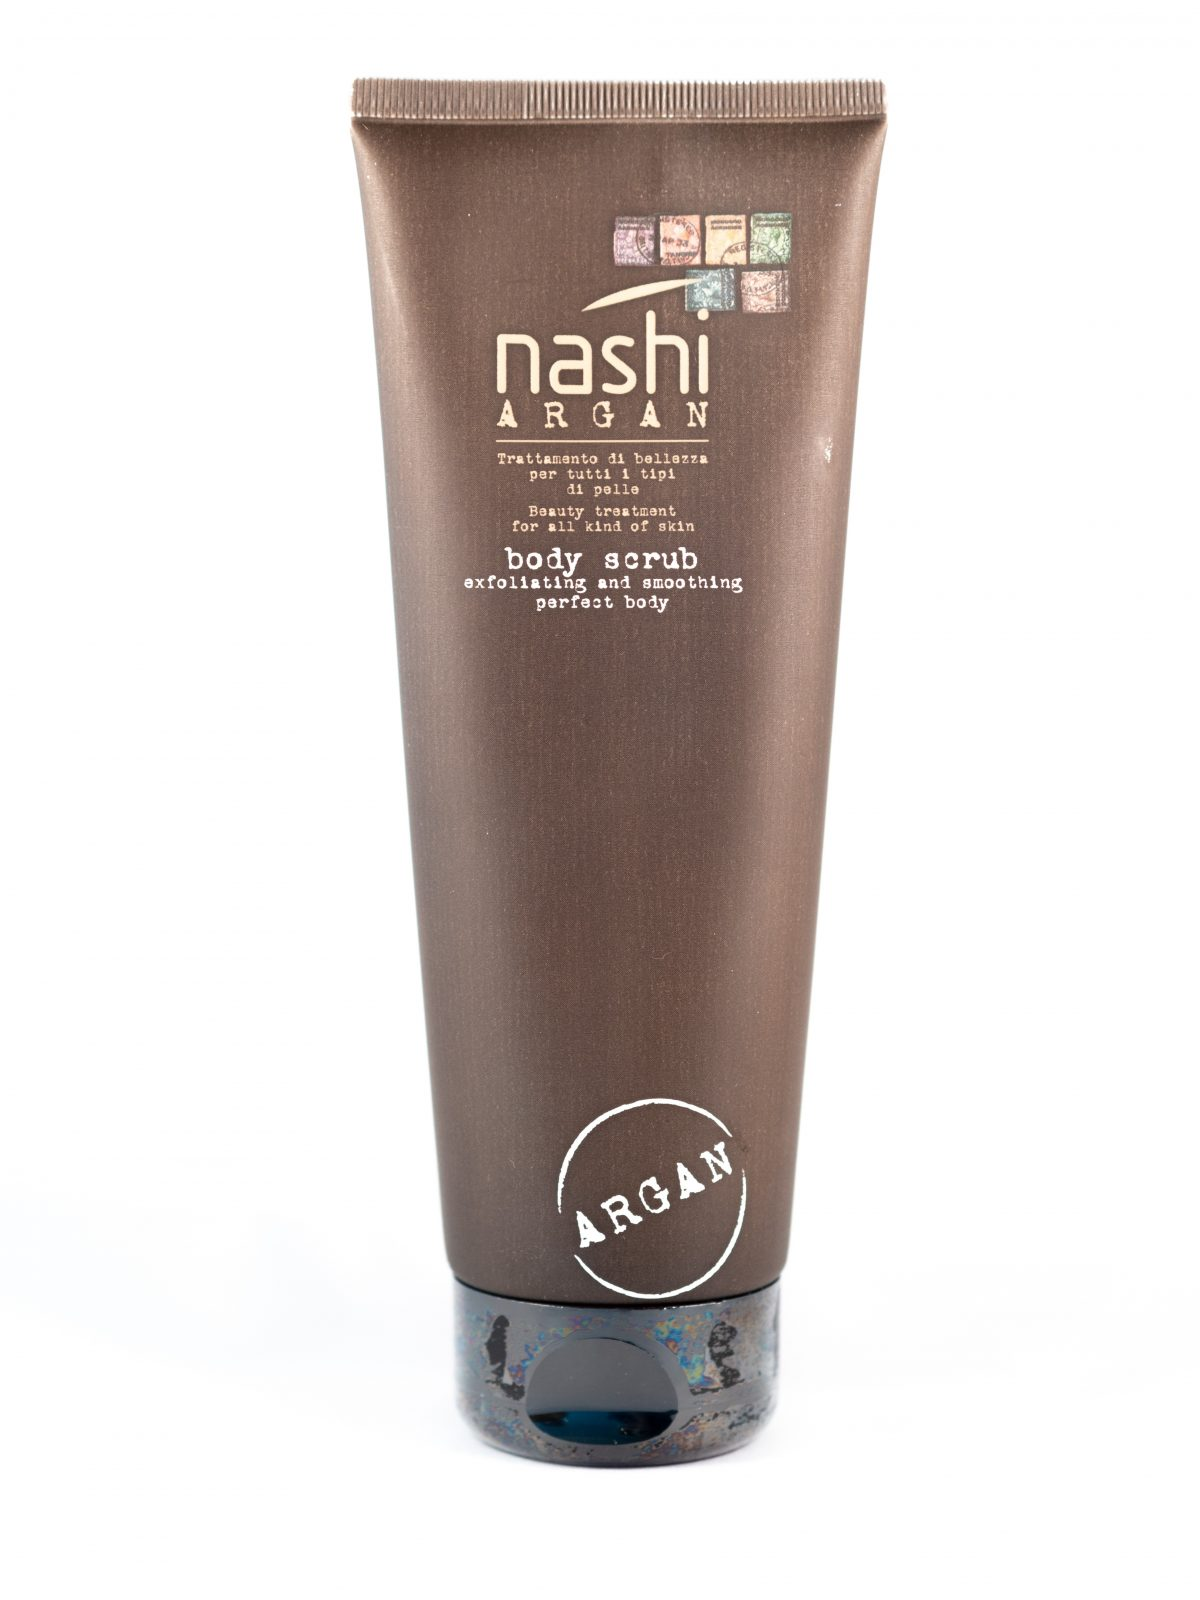 nashi argan body scrub 250 love my hair. Black Bedroom Furniture Sets. Home Design Ideas